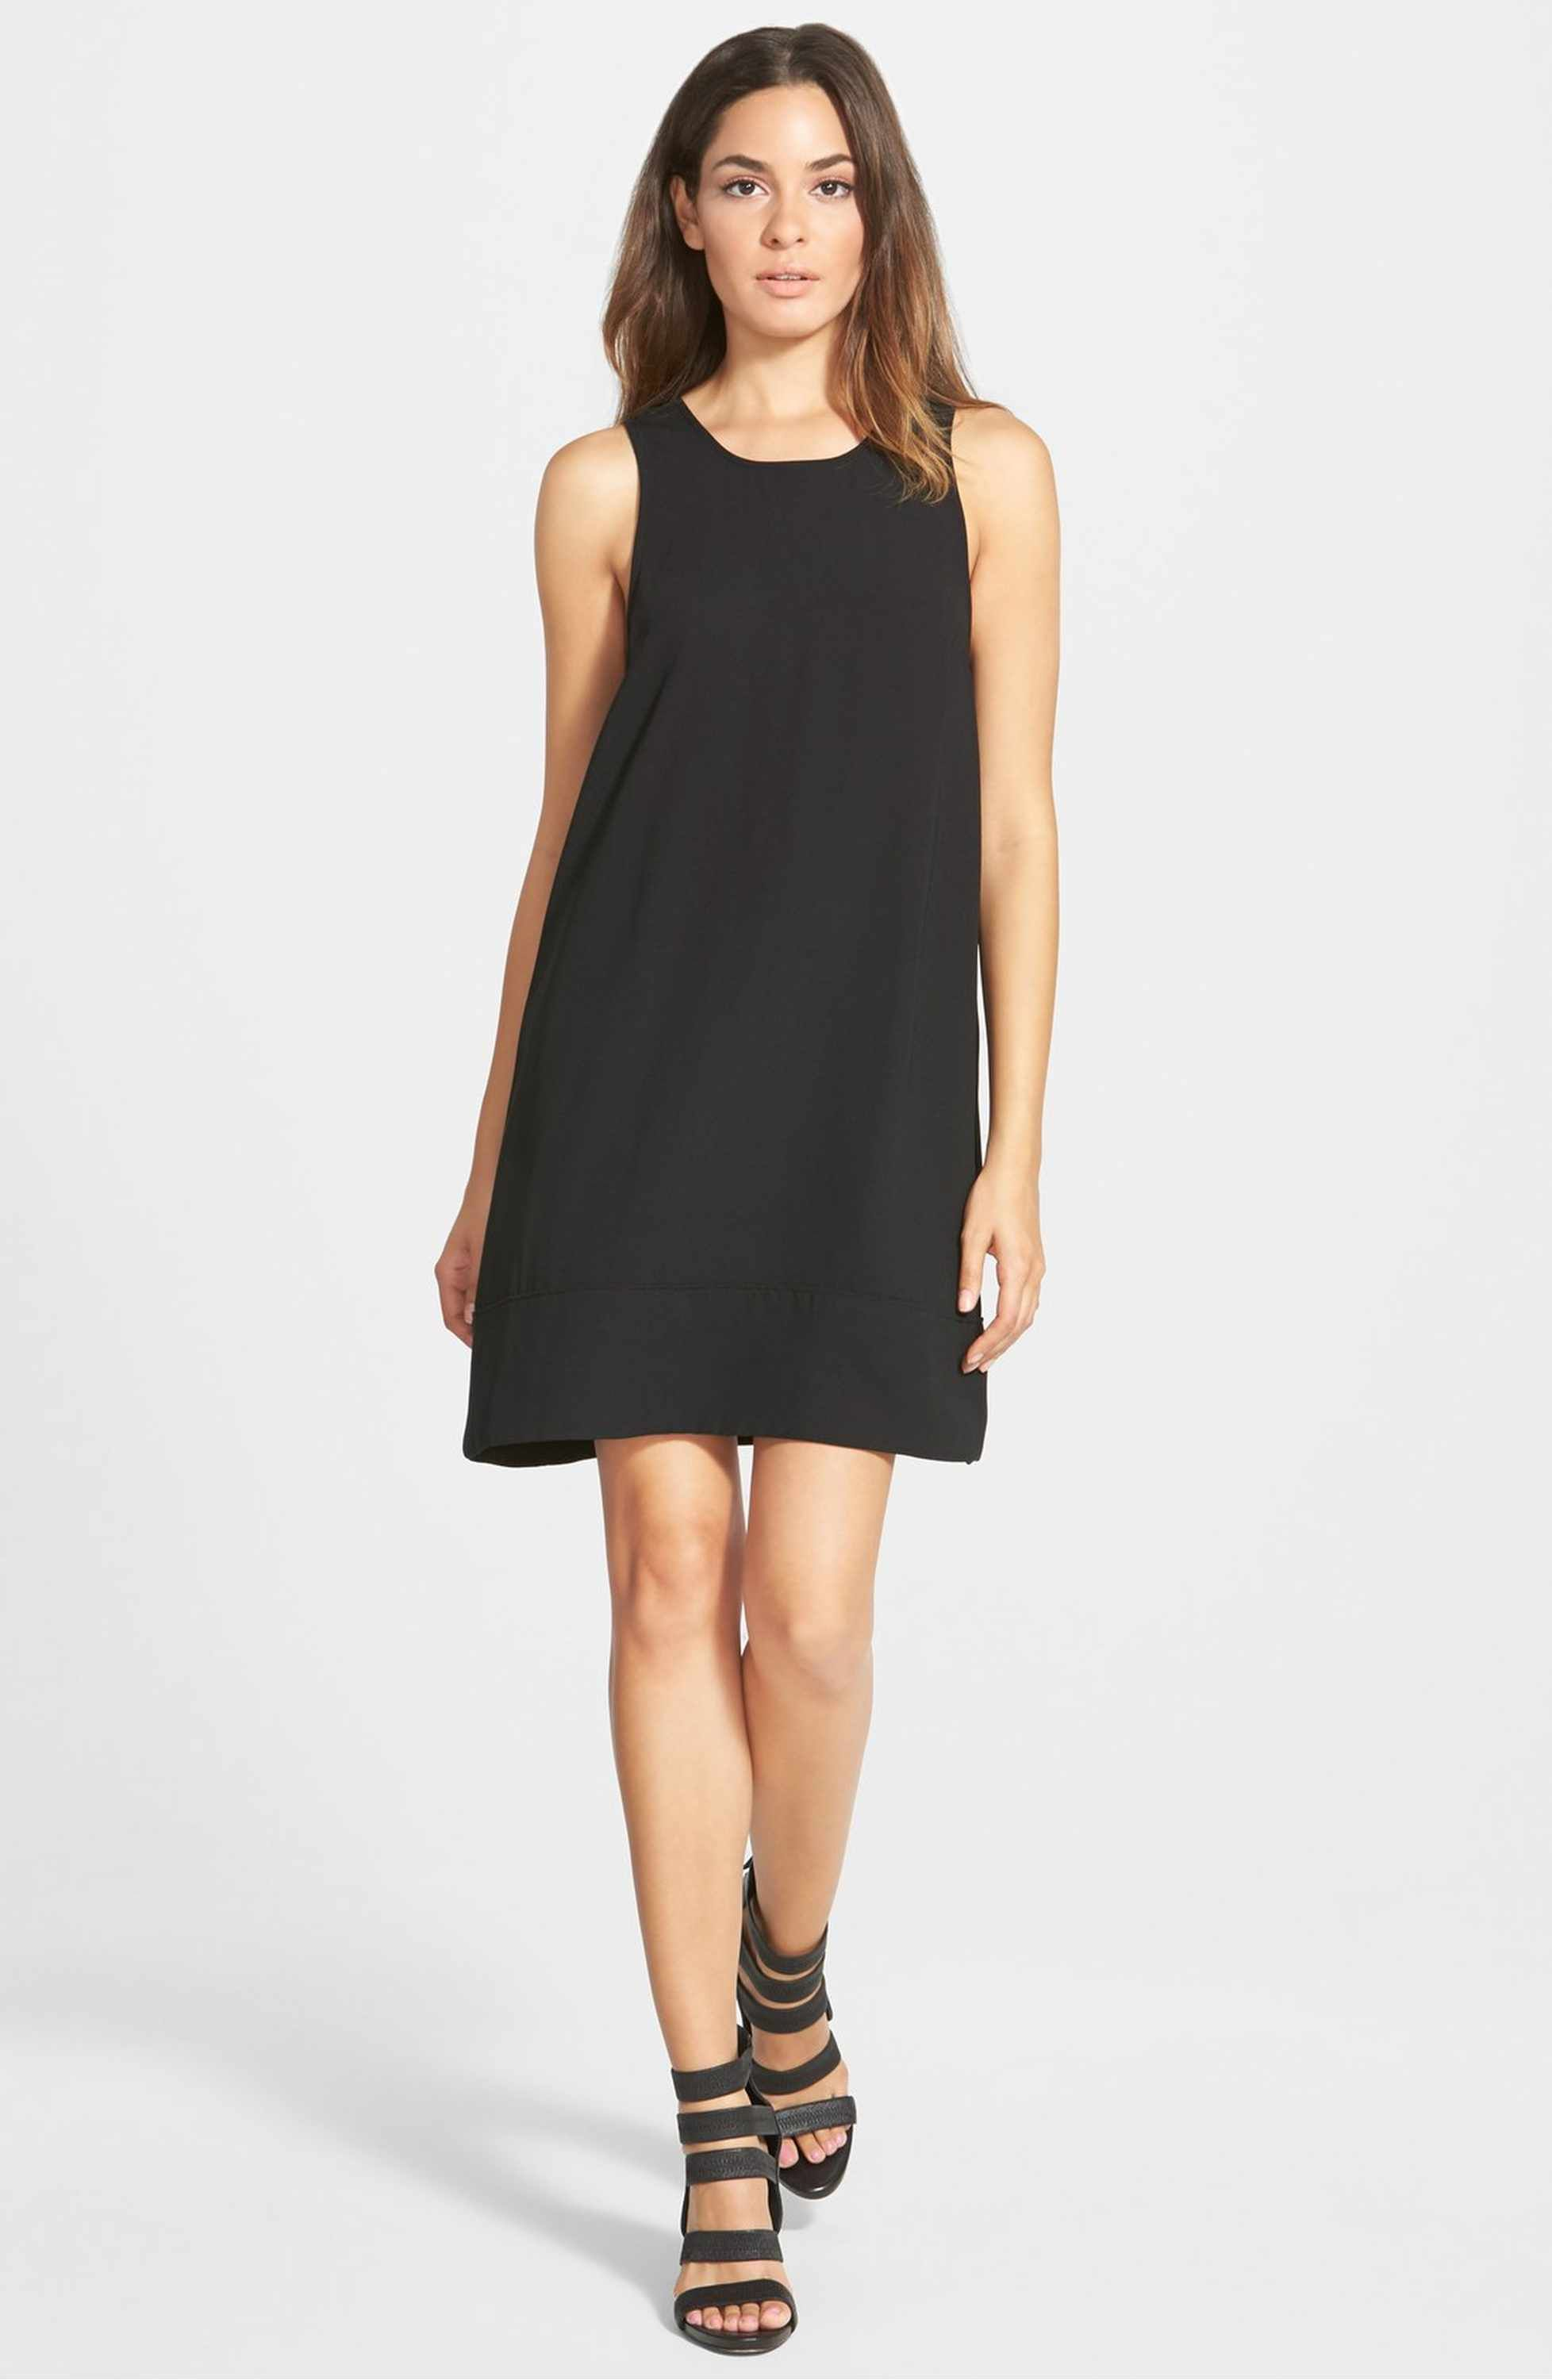 Racerback shift dress nordstrom sporty and free